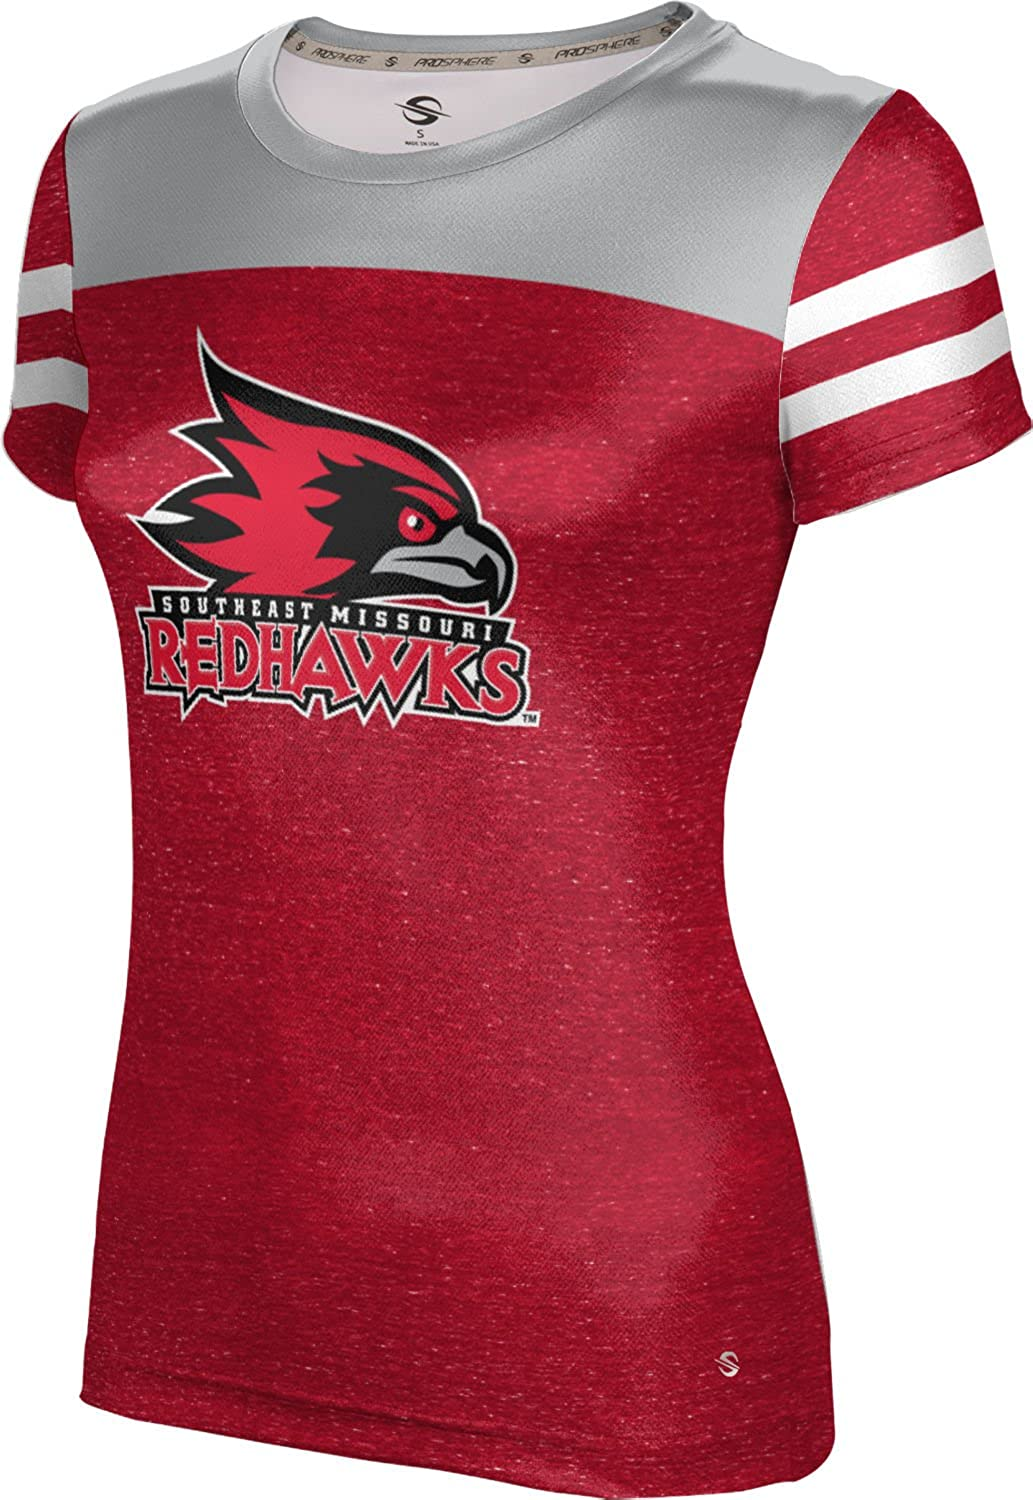 Gameday ProSphere Southeast Missouri State University Girls Performance T-Shirt